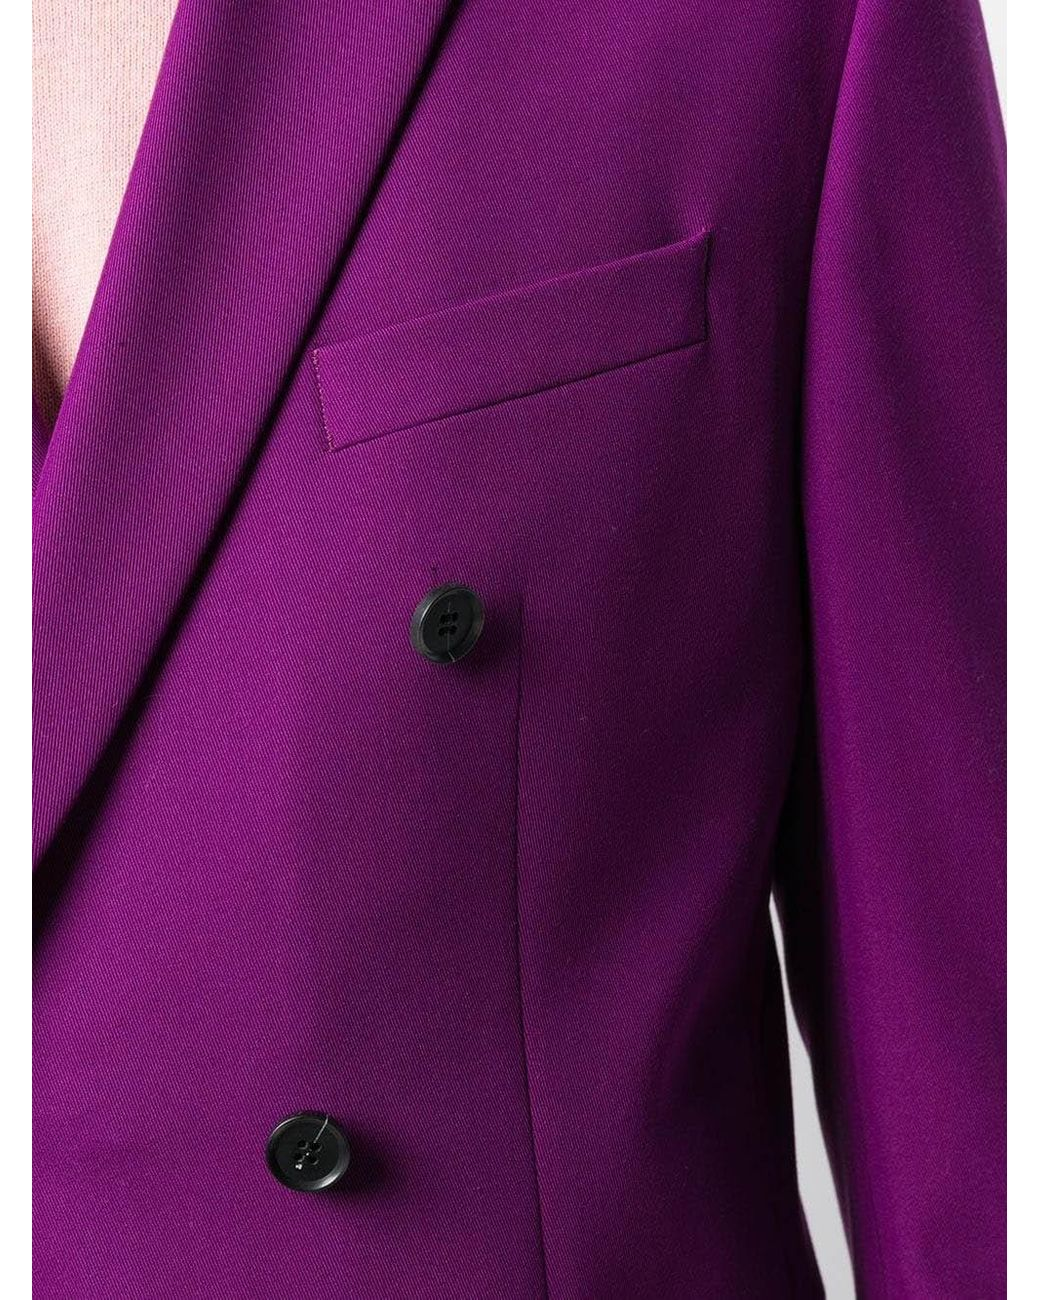 e0a25776b35c CALVIN KLEIN 205W39NYC Double-breasted Blazer in Purple for Men - Lyst